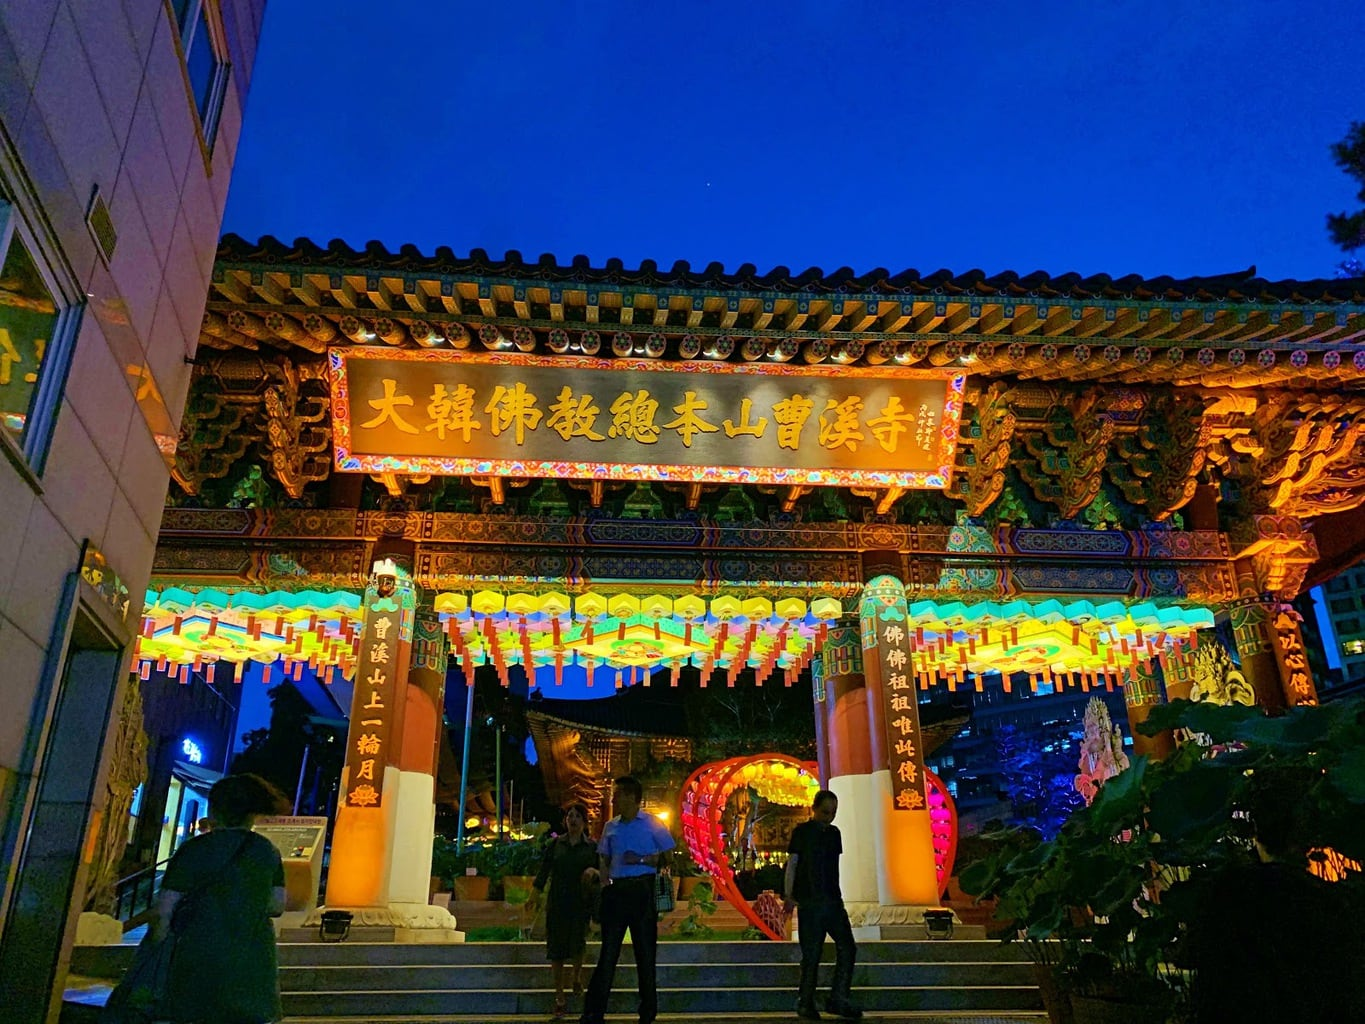 Entrance to Jogyesa Temple at night